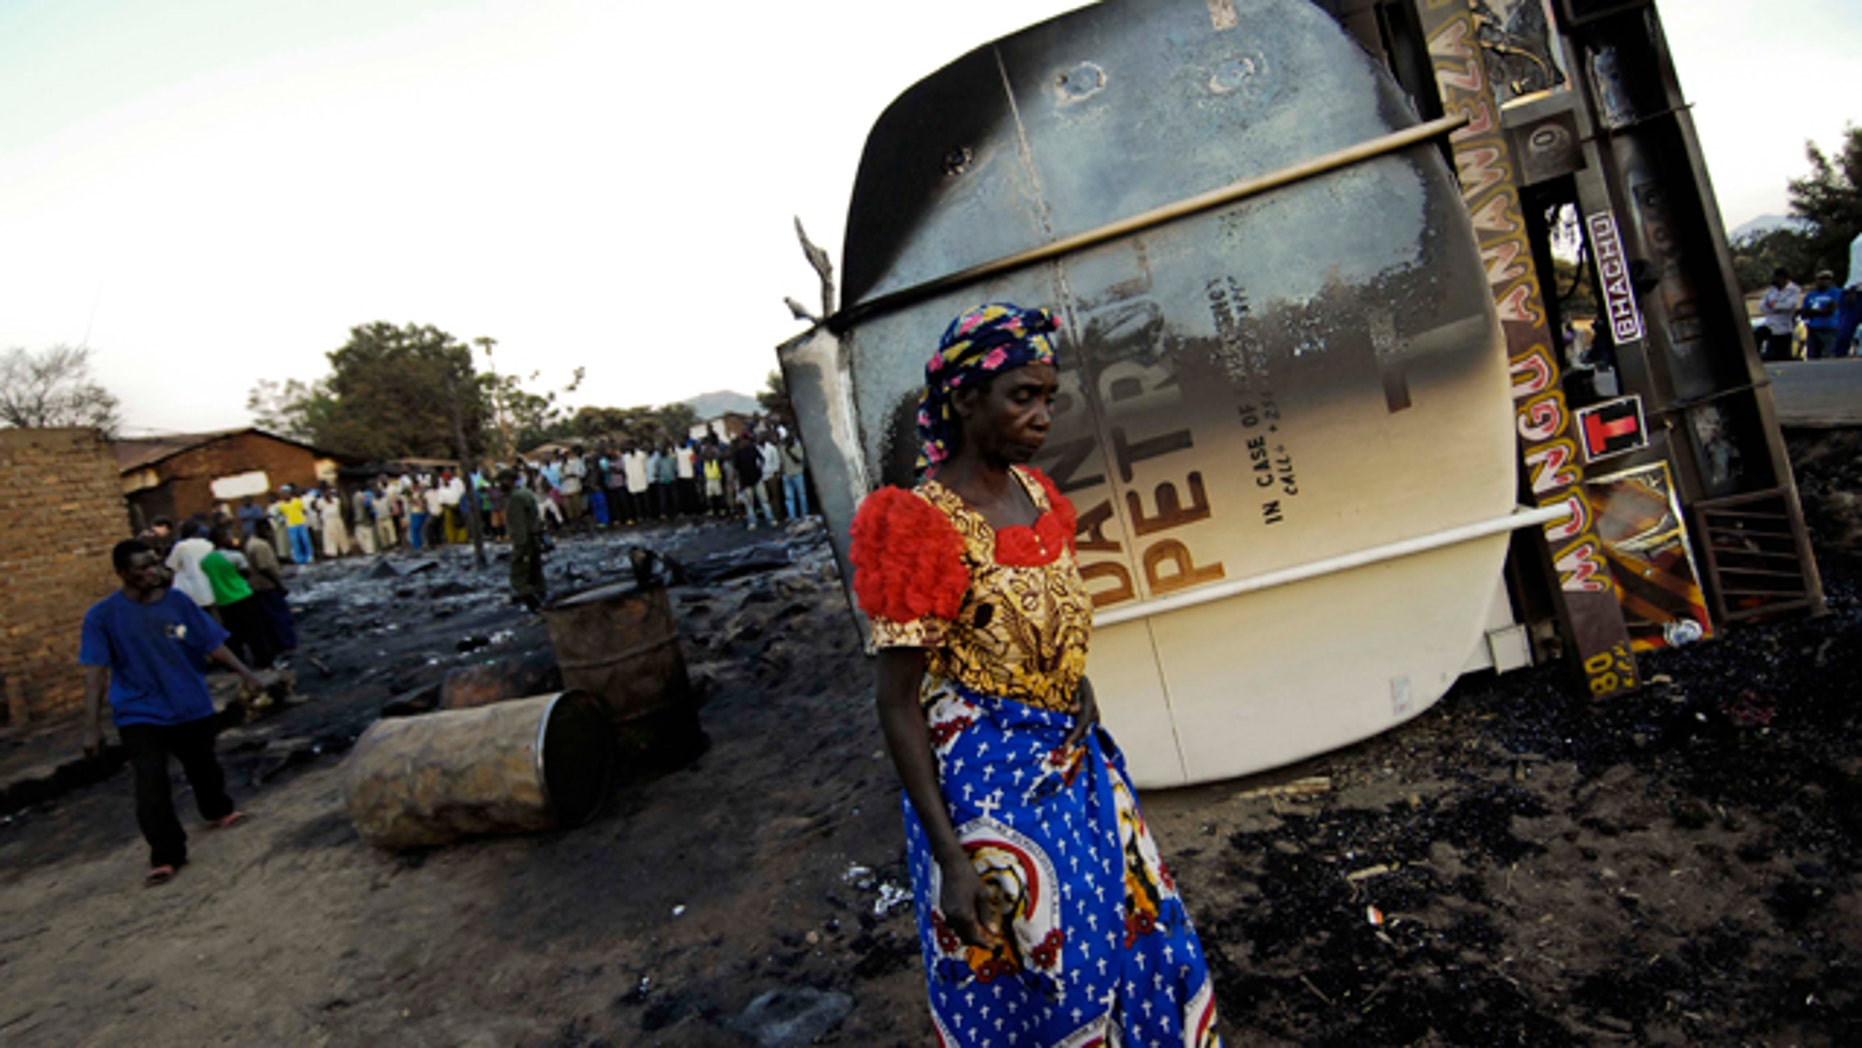 July 3: An inhabitant of the town of Sange, eastern Congo, walks past the burned out wreckage of a tanker truck involved in a accident Friday night.